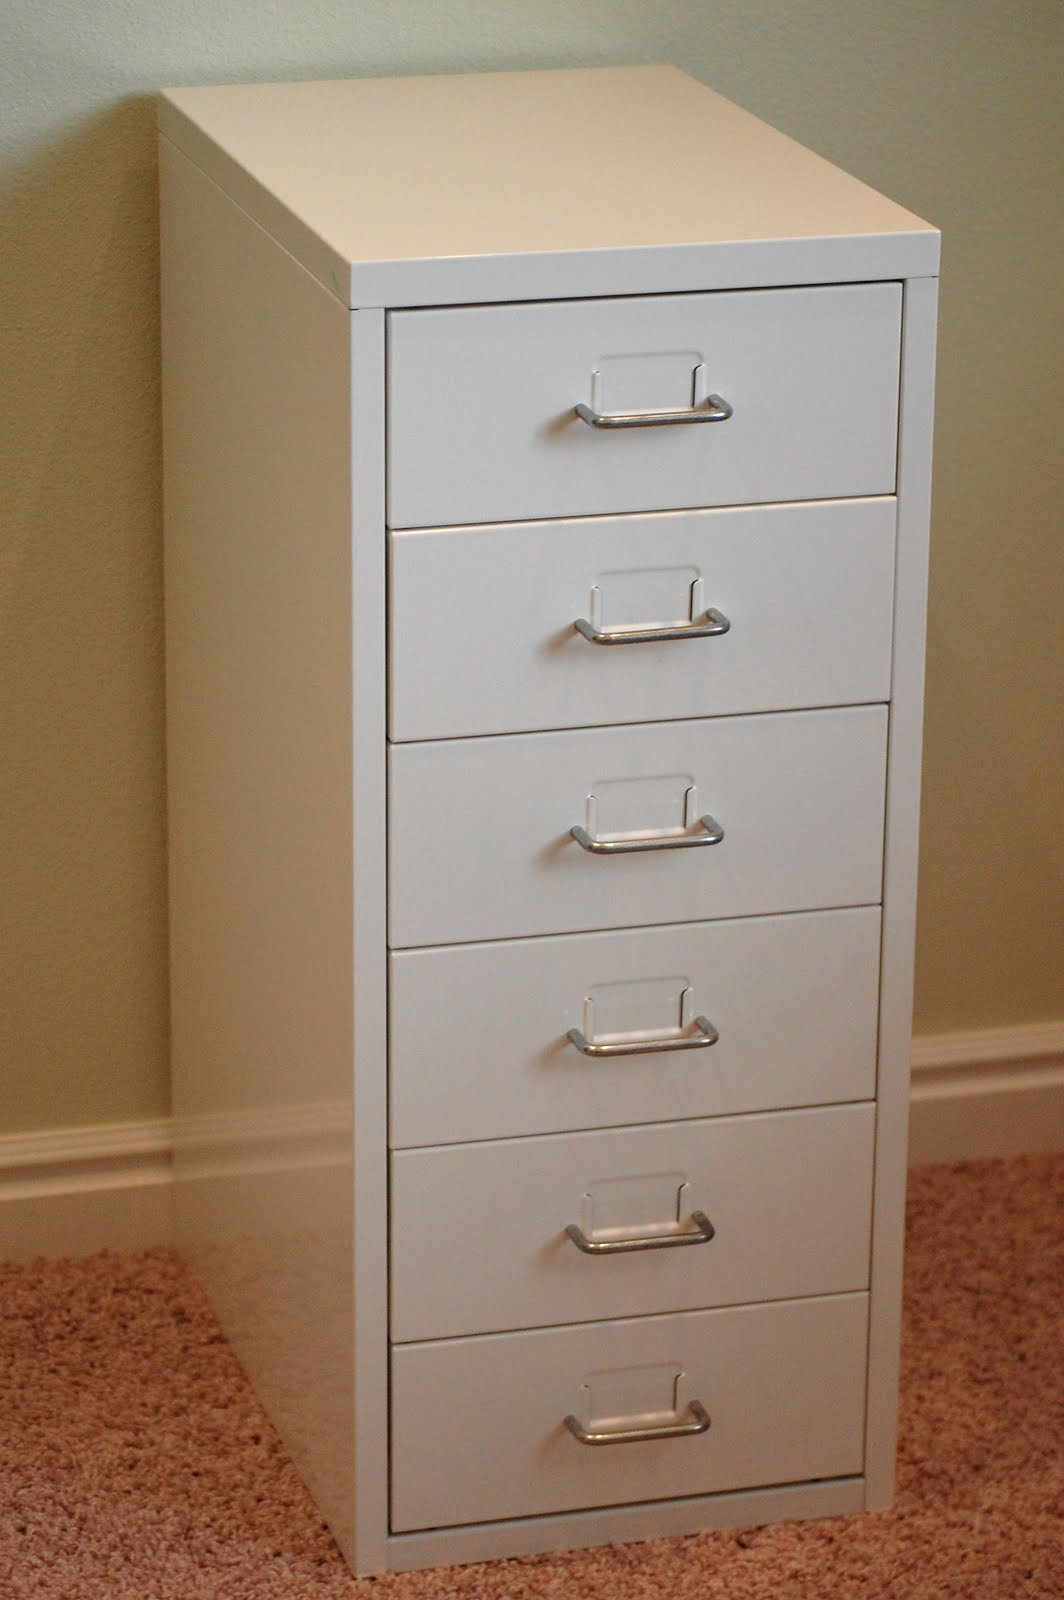 ikea office drawers. Ikea Office Drawers. Cabinet And Drawer Unit Drawers S I